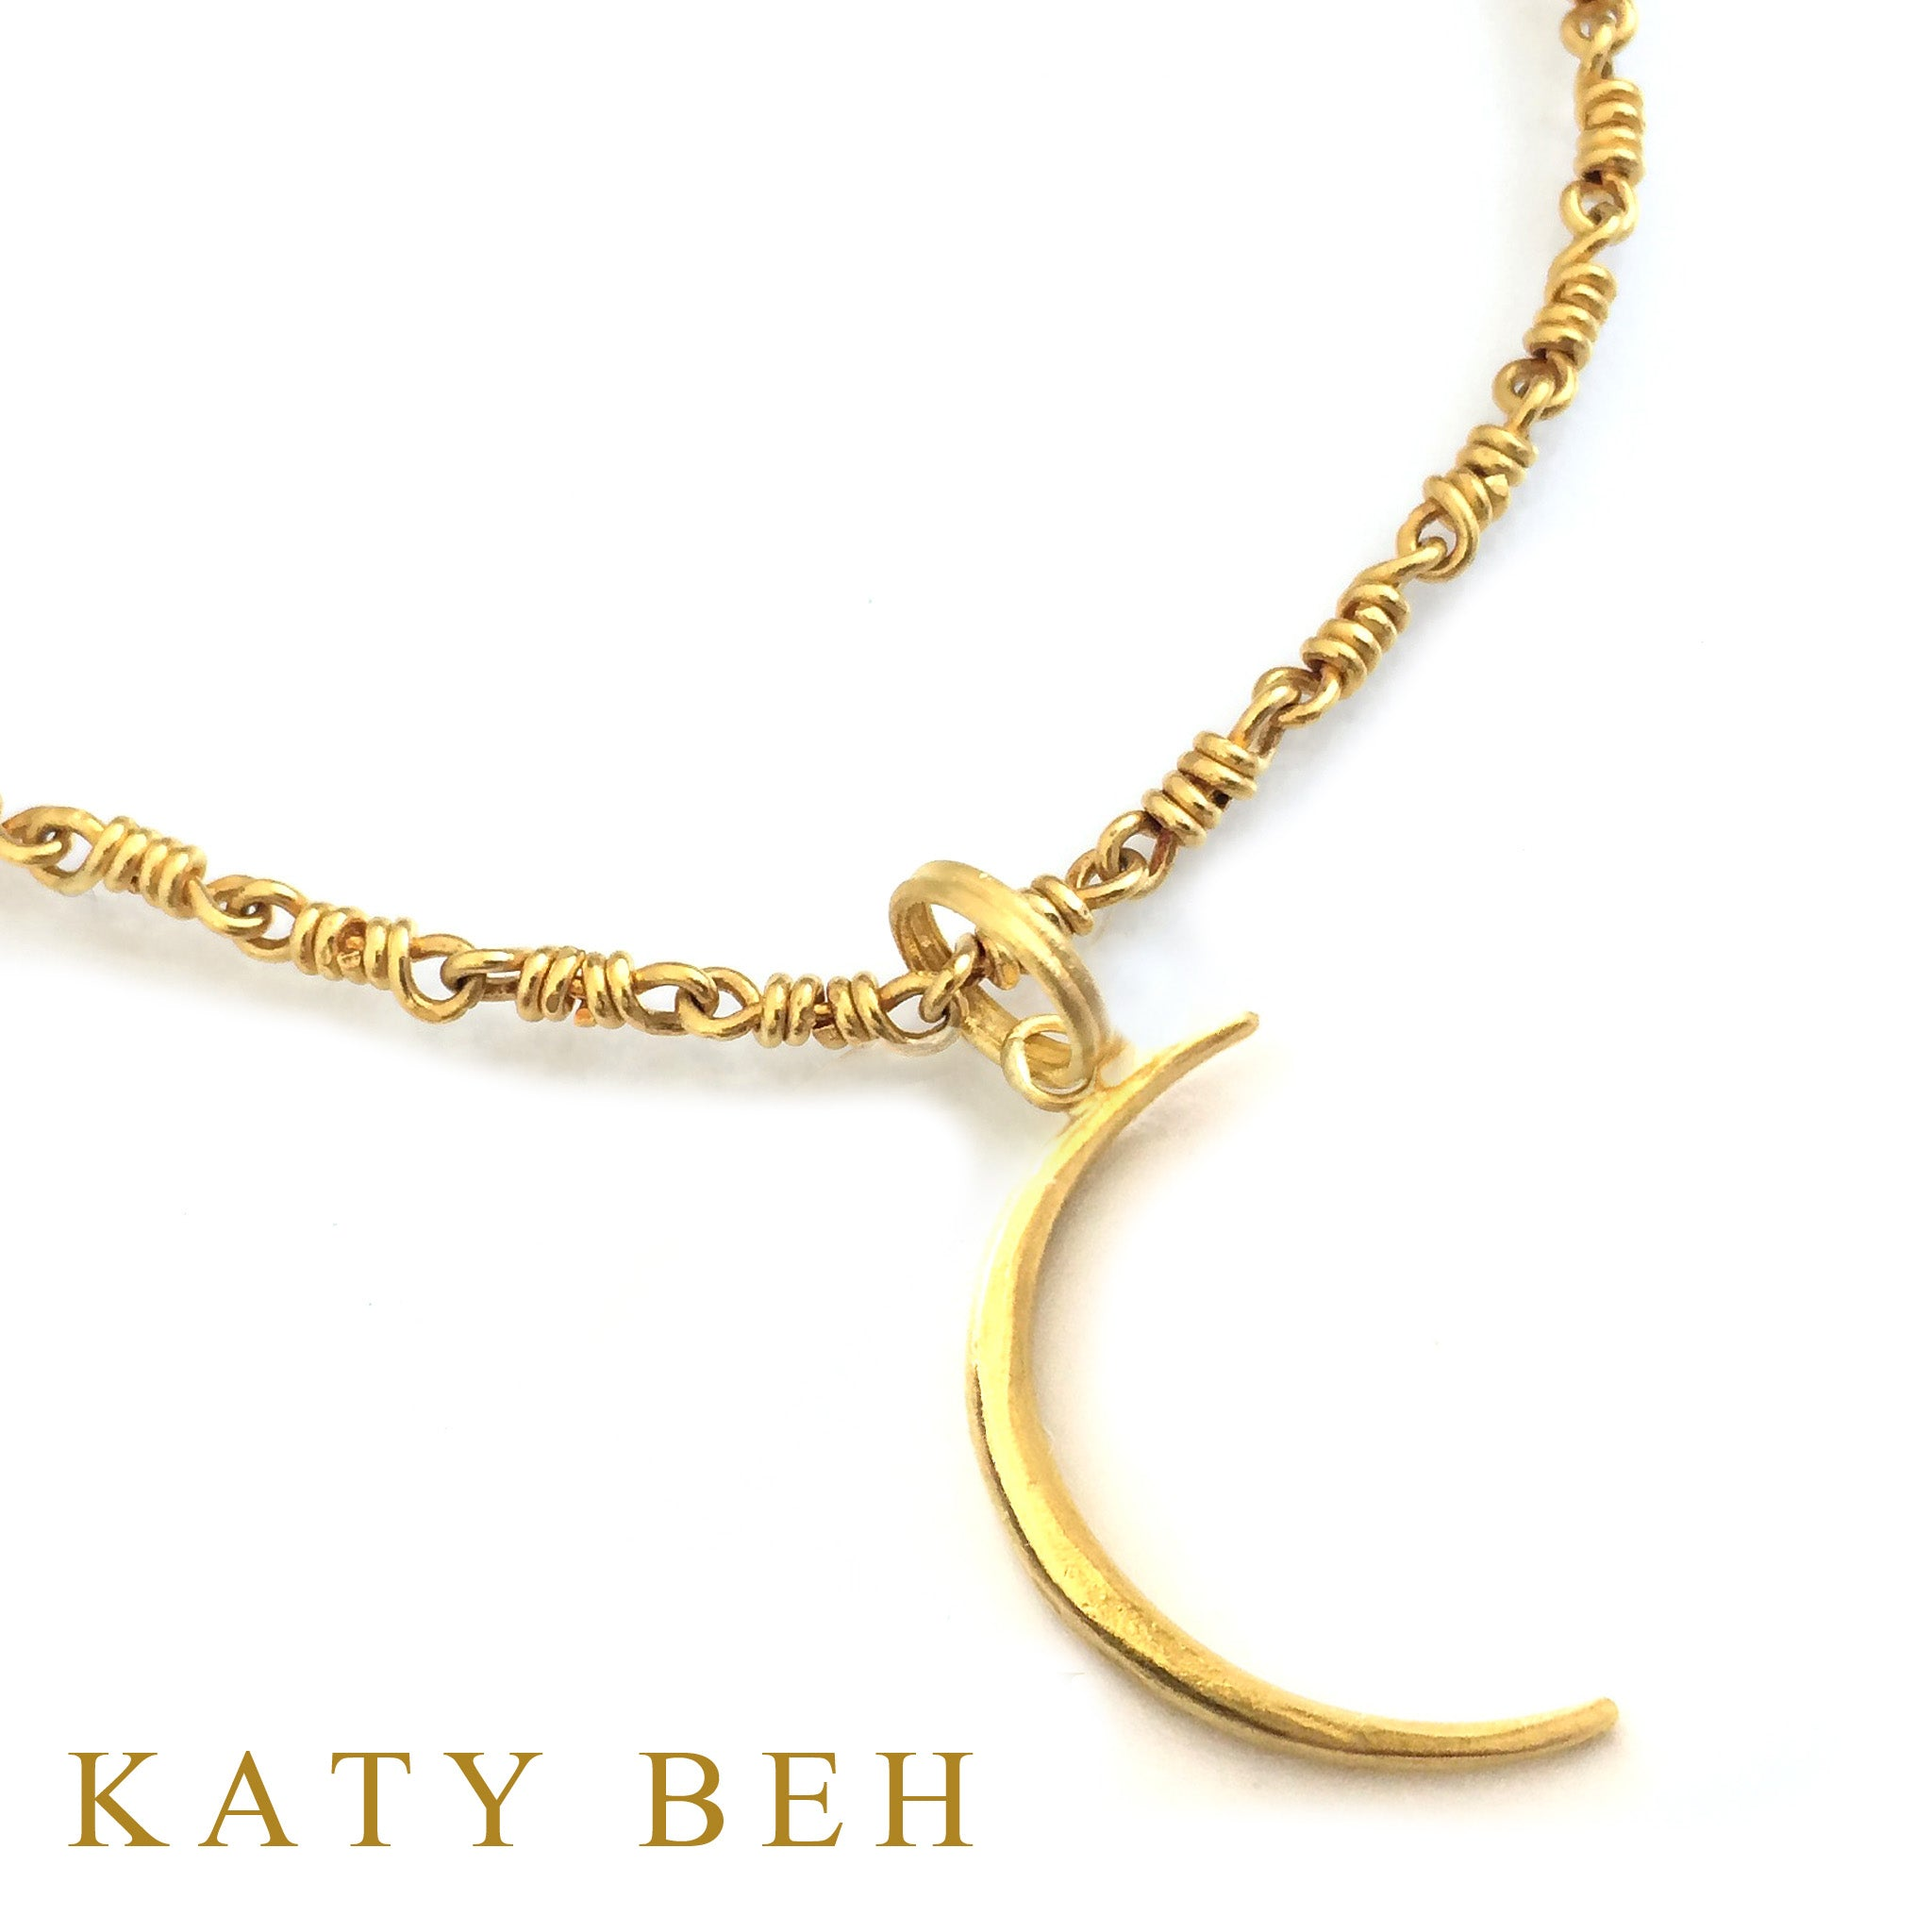 22k Yellow Gold Crescent Moon Pendant